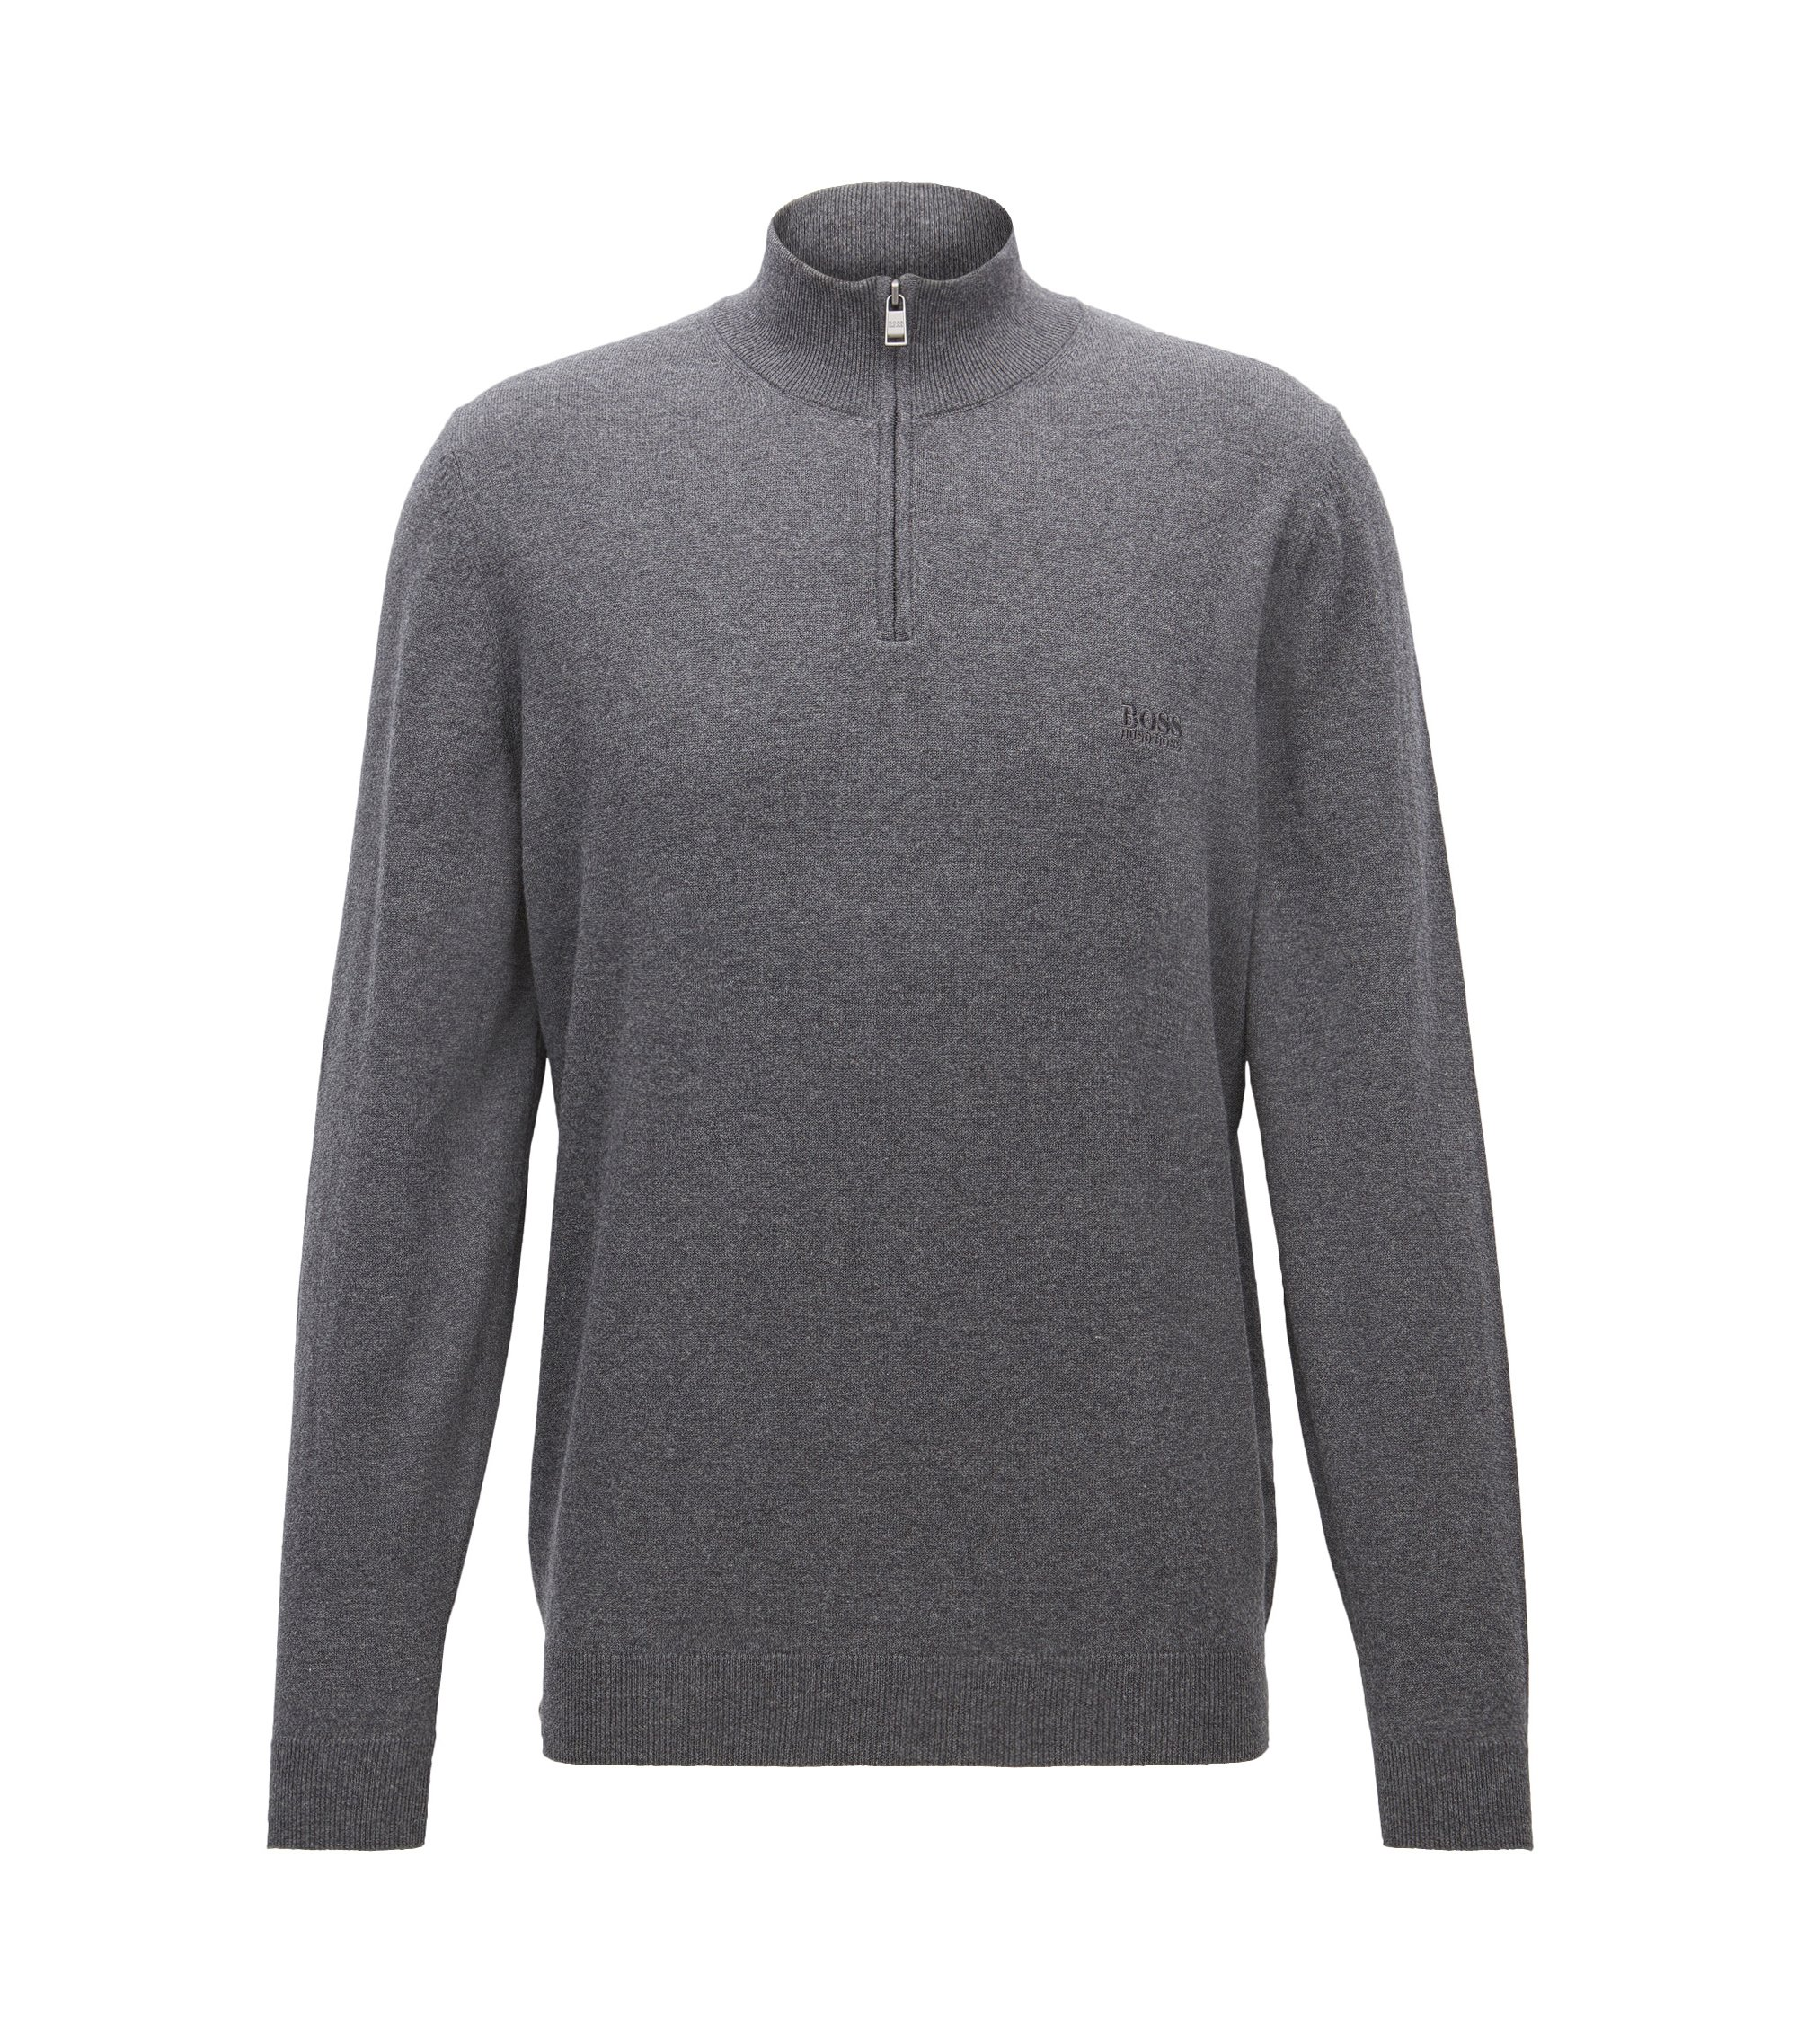 Regular-fit zip-neck sweater in Italian cotton, Grey